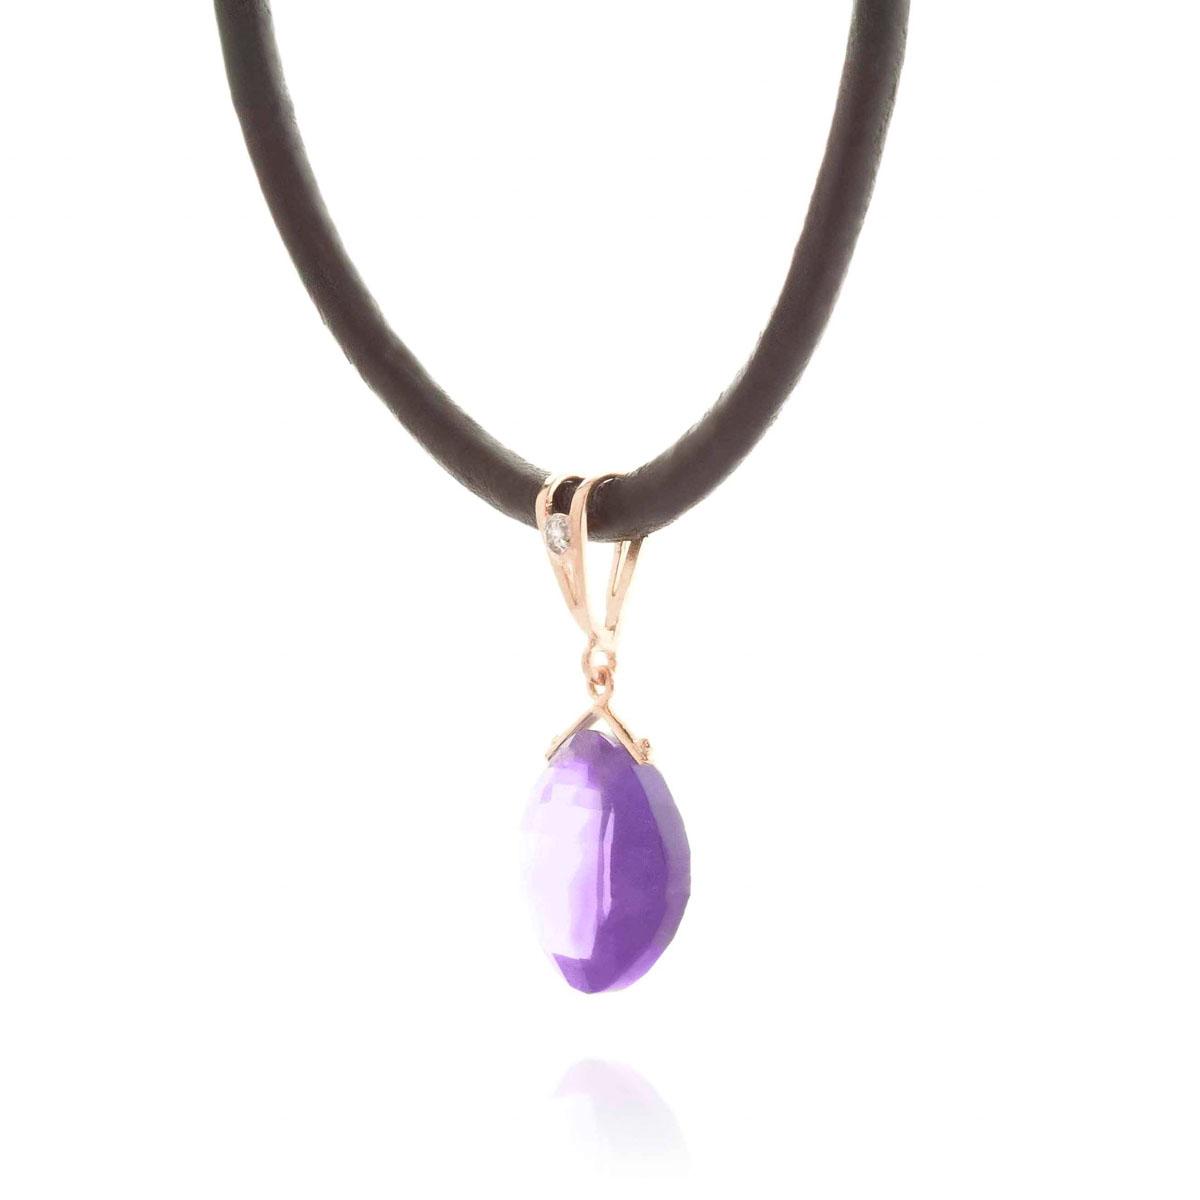 Amethyst Leather Pendant Necklace 8.76 ctw in 9ct Rose Gold